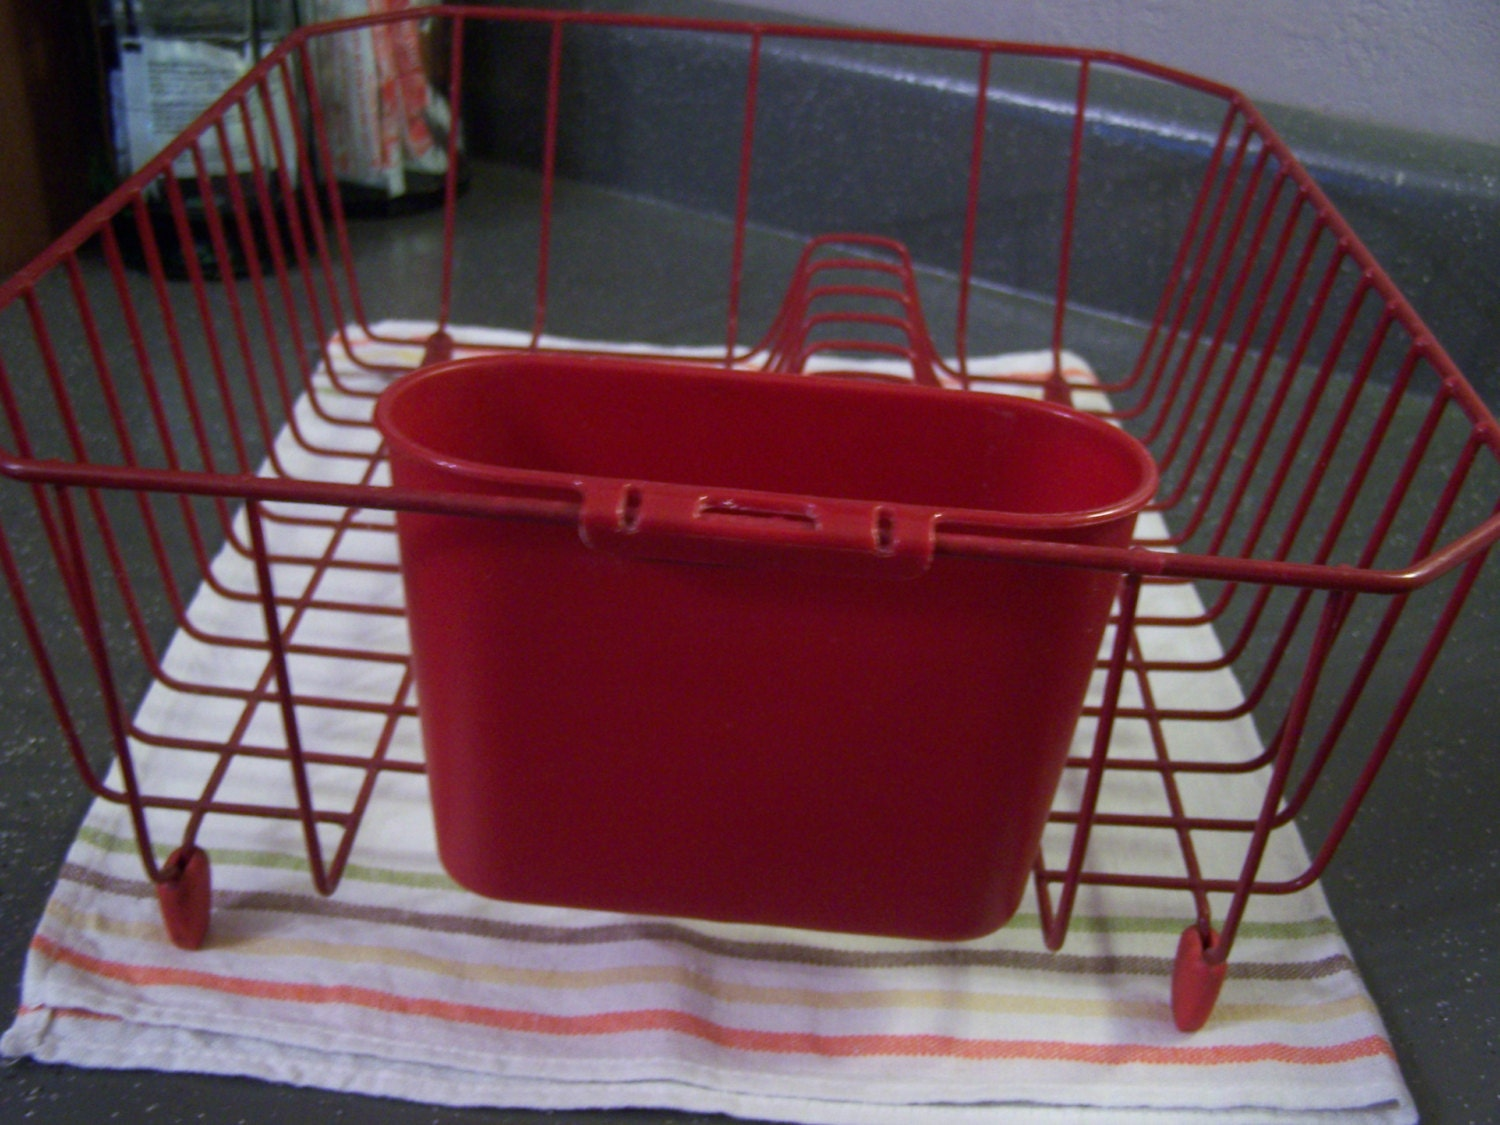 Dish Drying Rack On Etsy A Global Handmade And Vintage